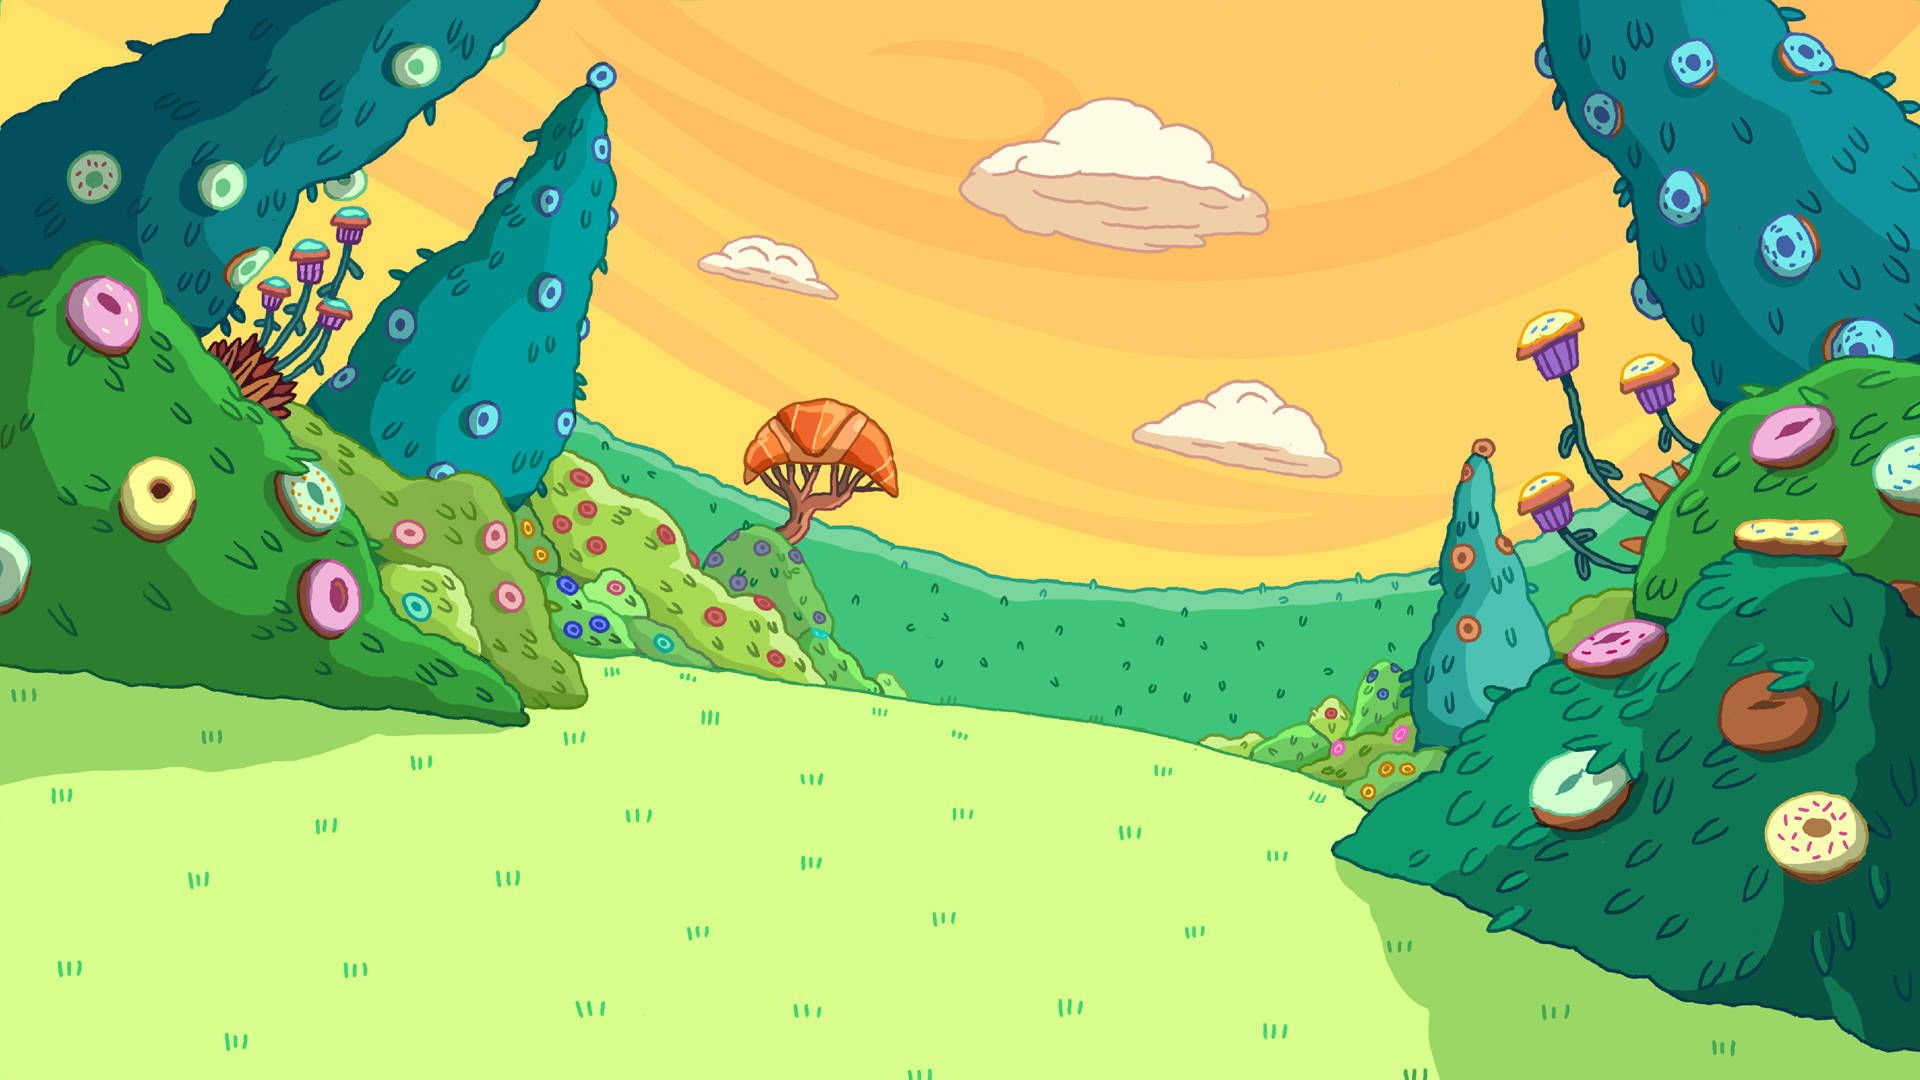 Adventure Time Wallpaper 1920x1080 37279 Adventure Time Background Adventure Time Wallpaper Adventure Time